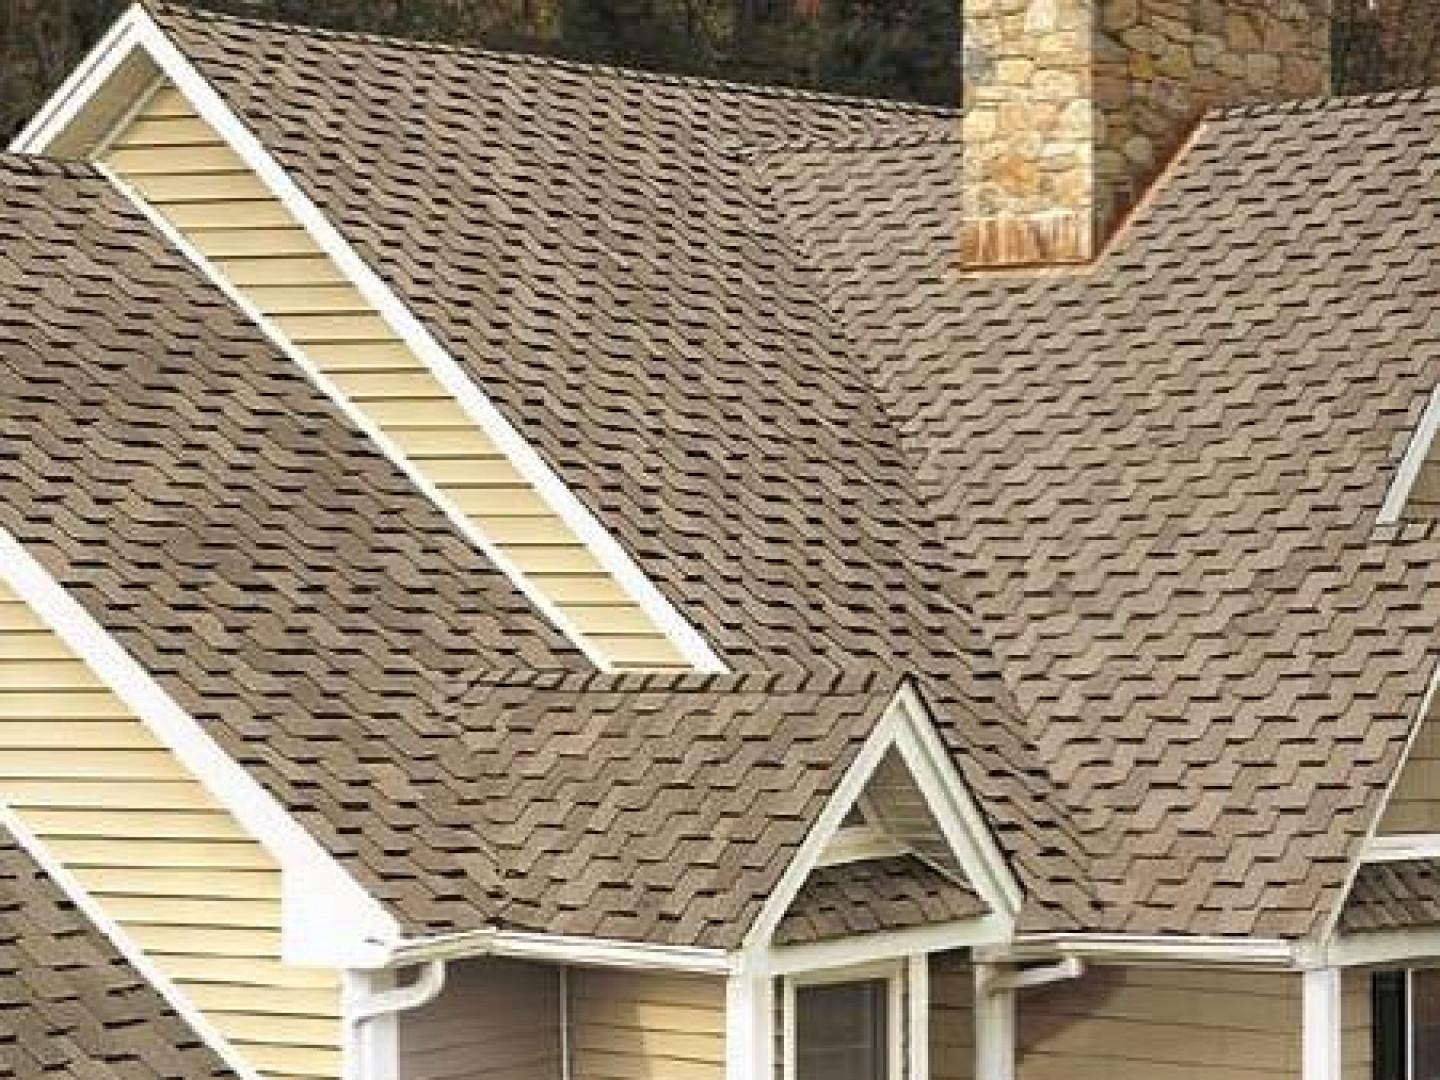 There so much to loveabout asphalt shingles